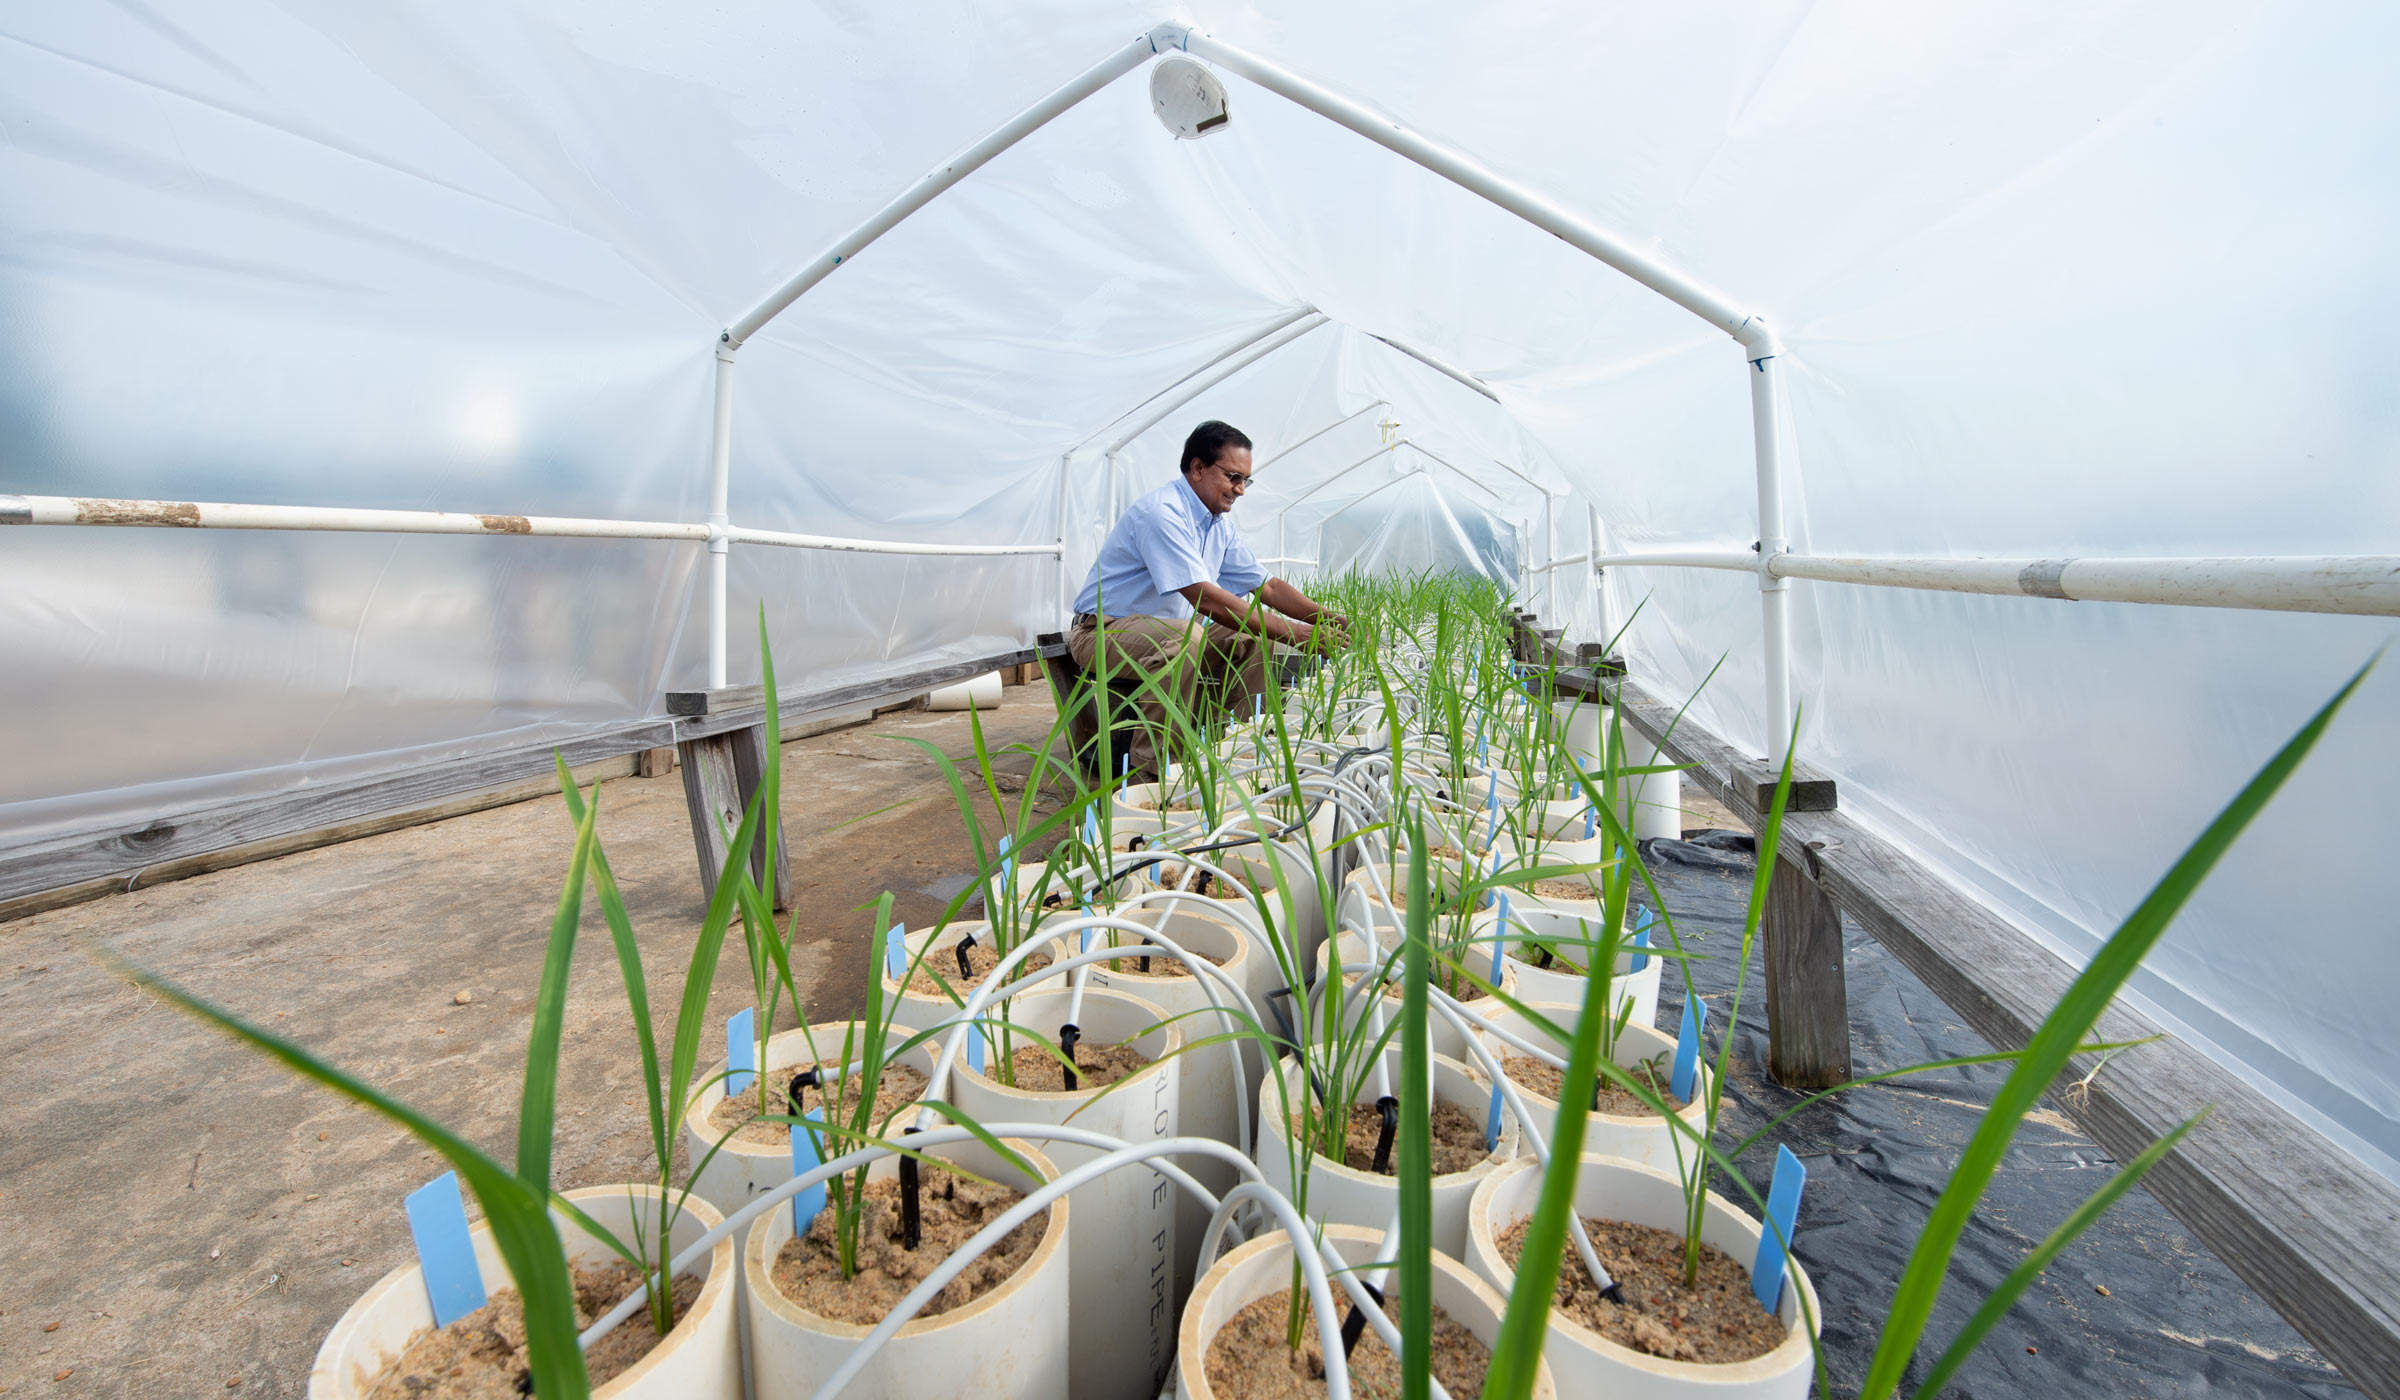 Plant and Soil Sciences Raja Reddy checks out the progress of his rice research in the controlled conditions of a greenhouse.